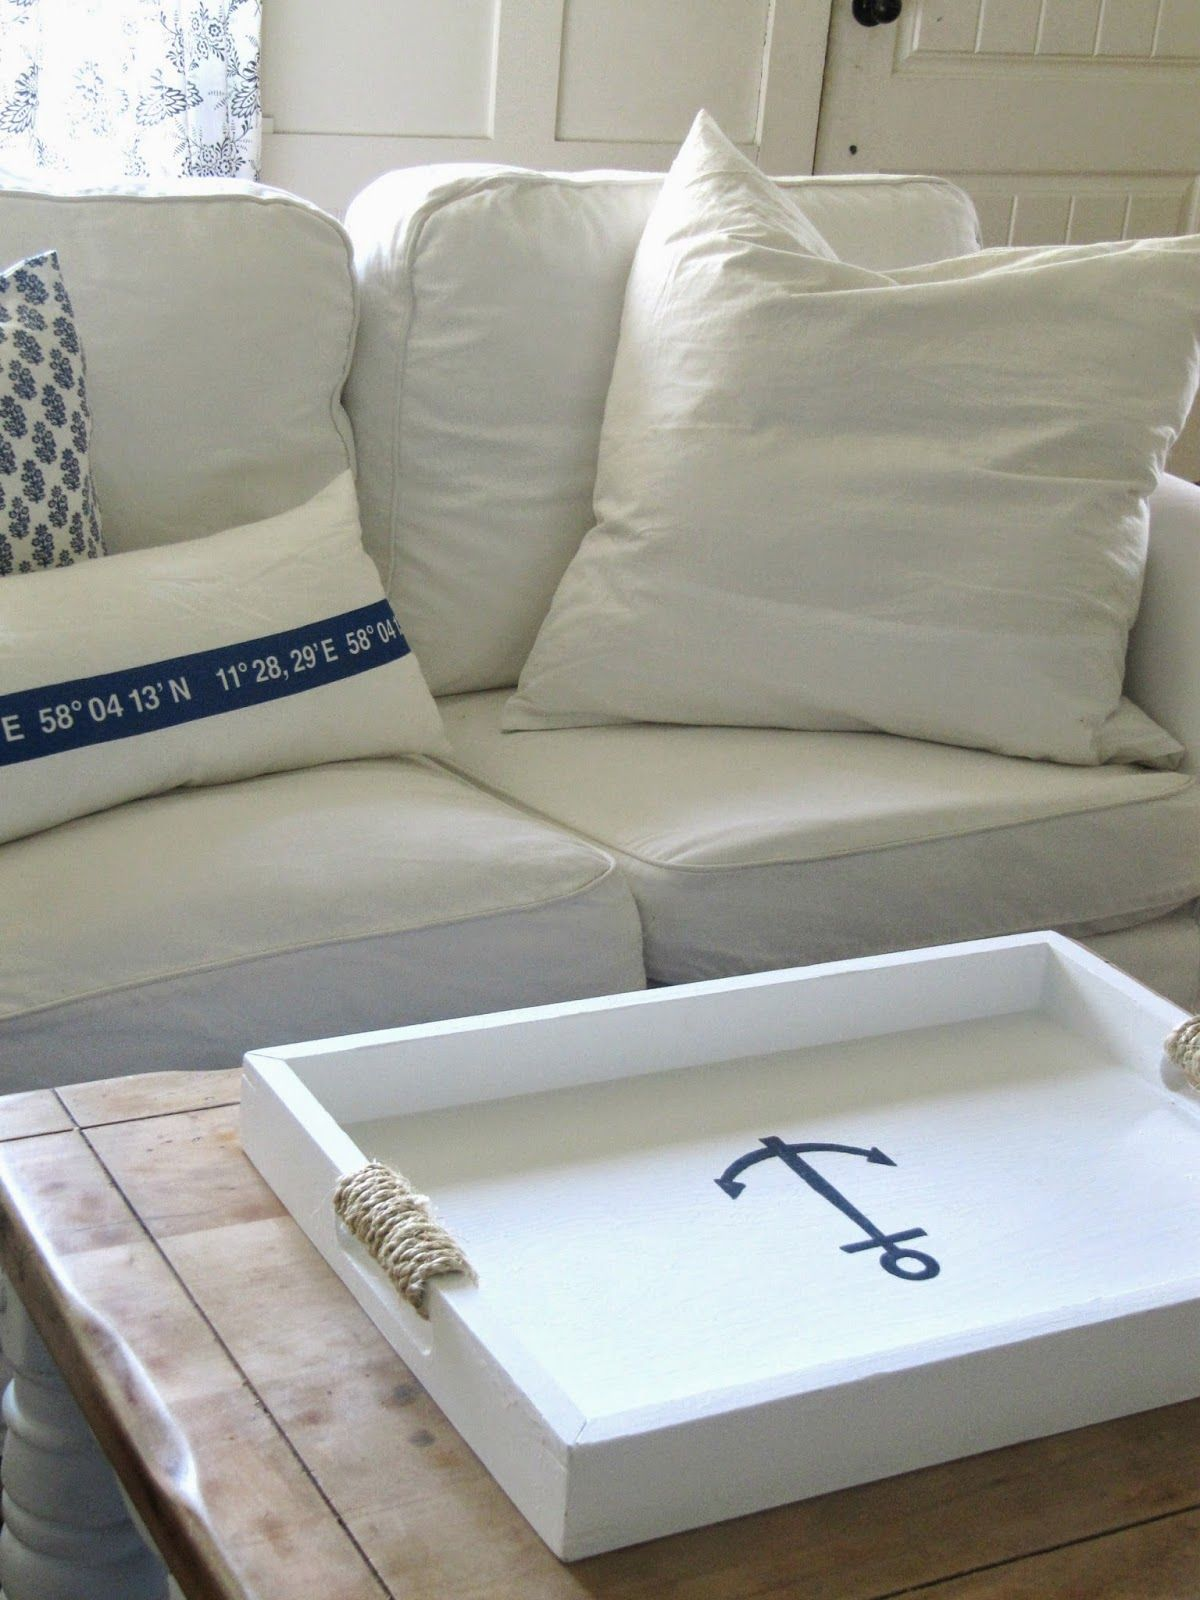 simple nautical tray makeover nice tray and not too hard to adapt